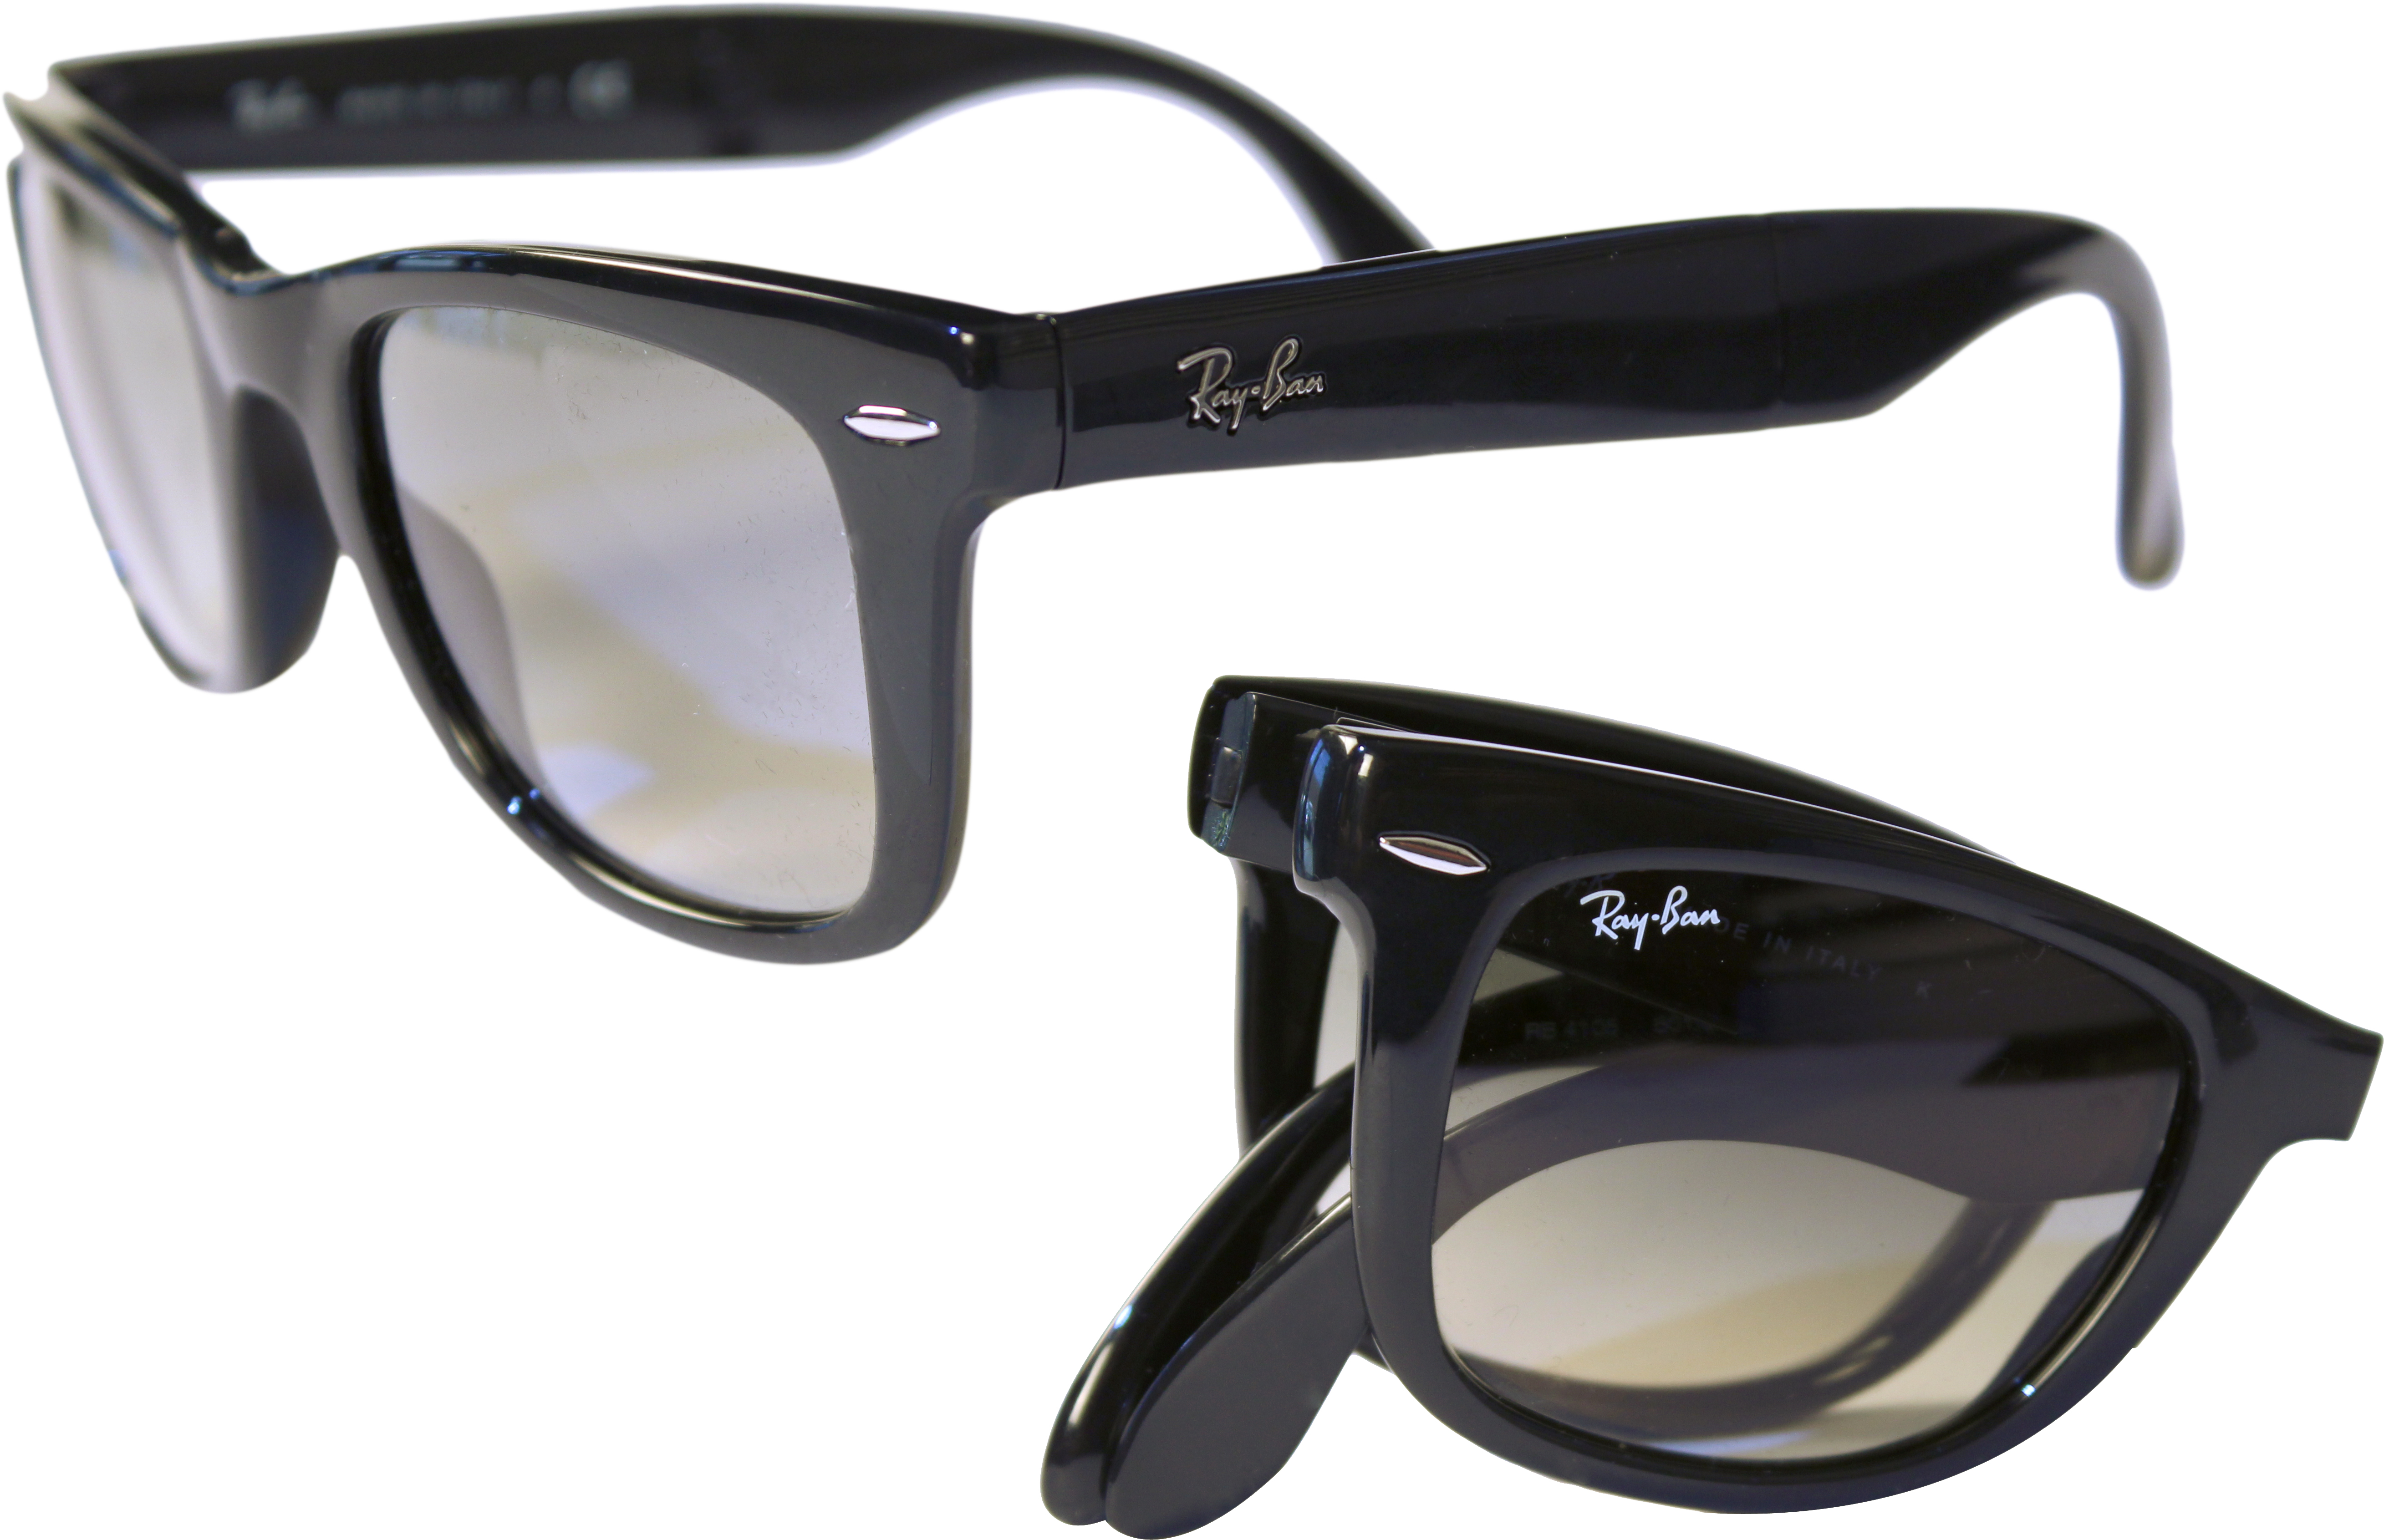 7513730293ad Reviews   Ratings for Ray-Ban Folding Wayfarer Prescription Sunglasses  RB4105 — 3 review — Page 1